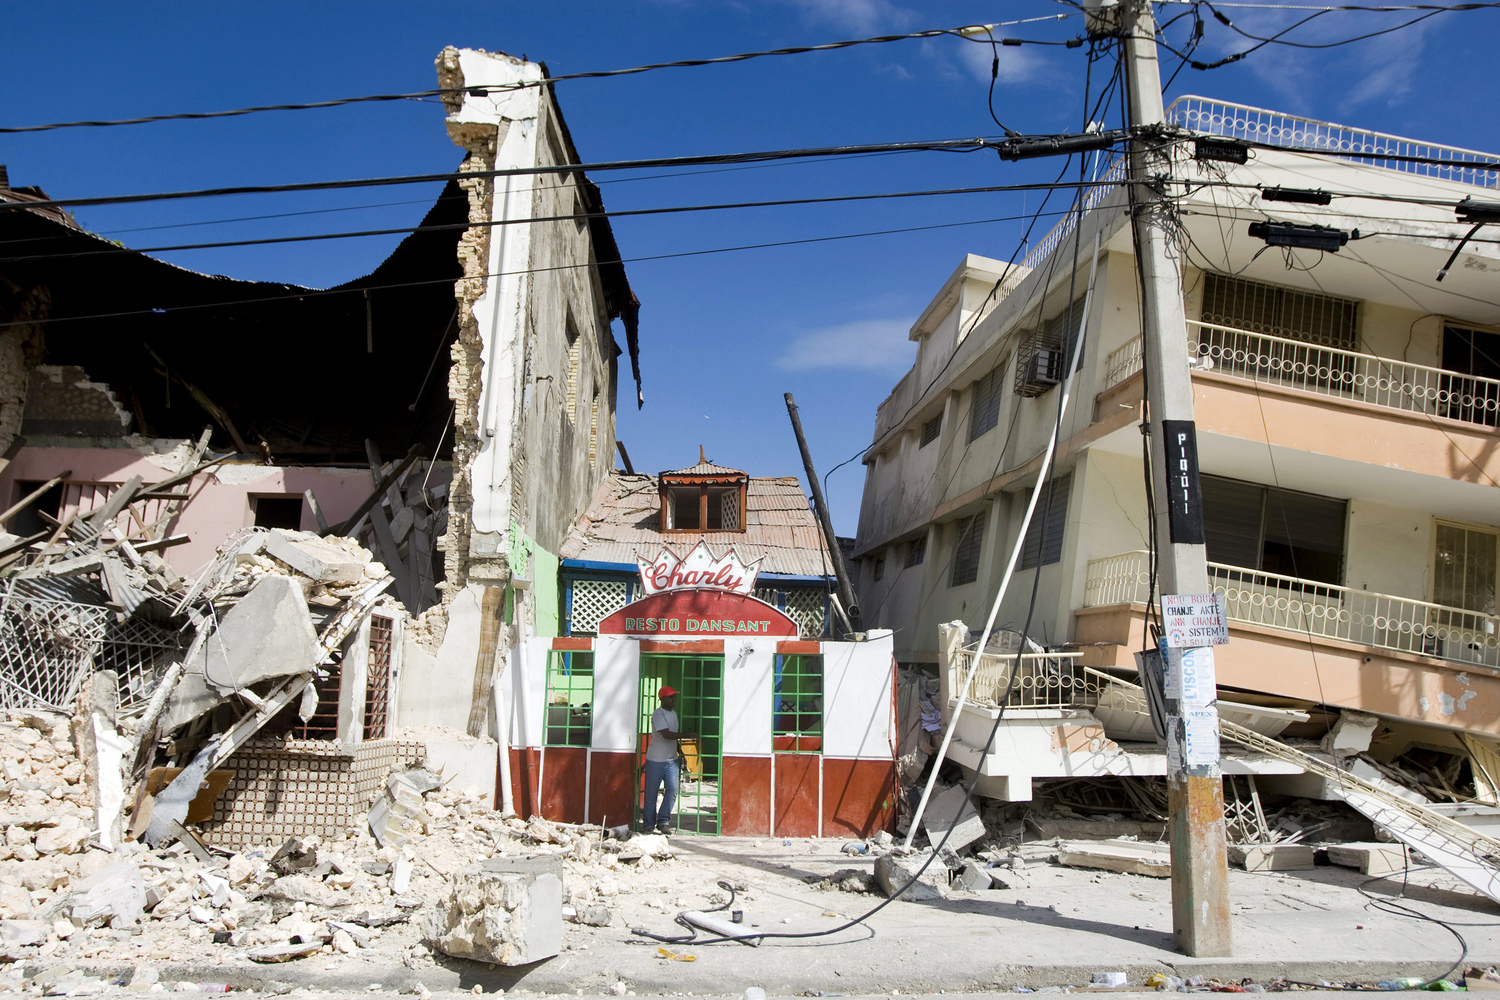 A man exits a restaurant after he looked for his belongings. An earthquake rocked Port au Prince on January 12, 2010.